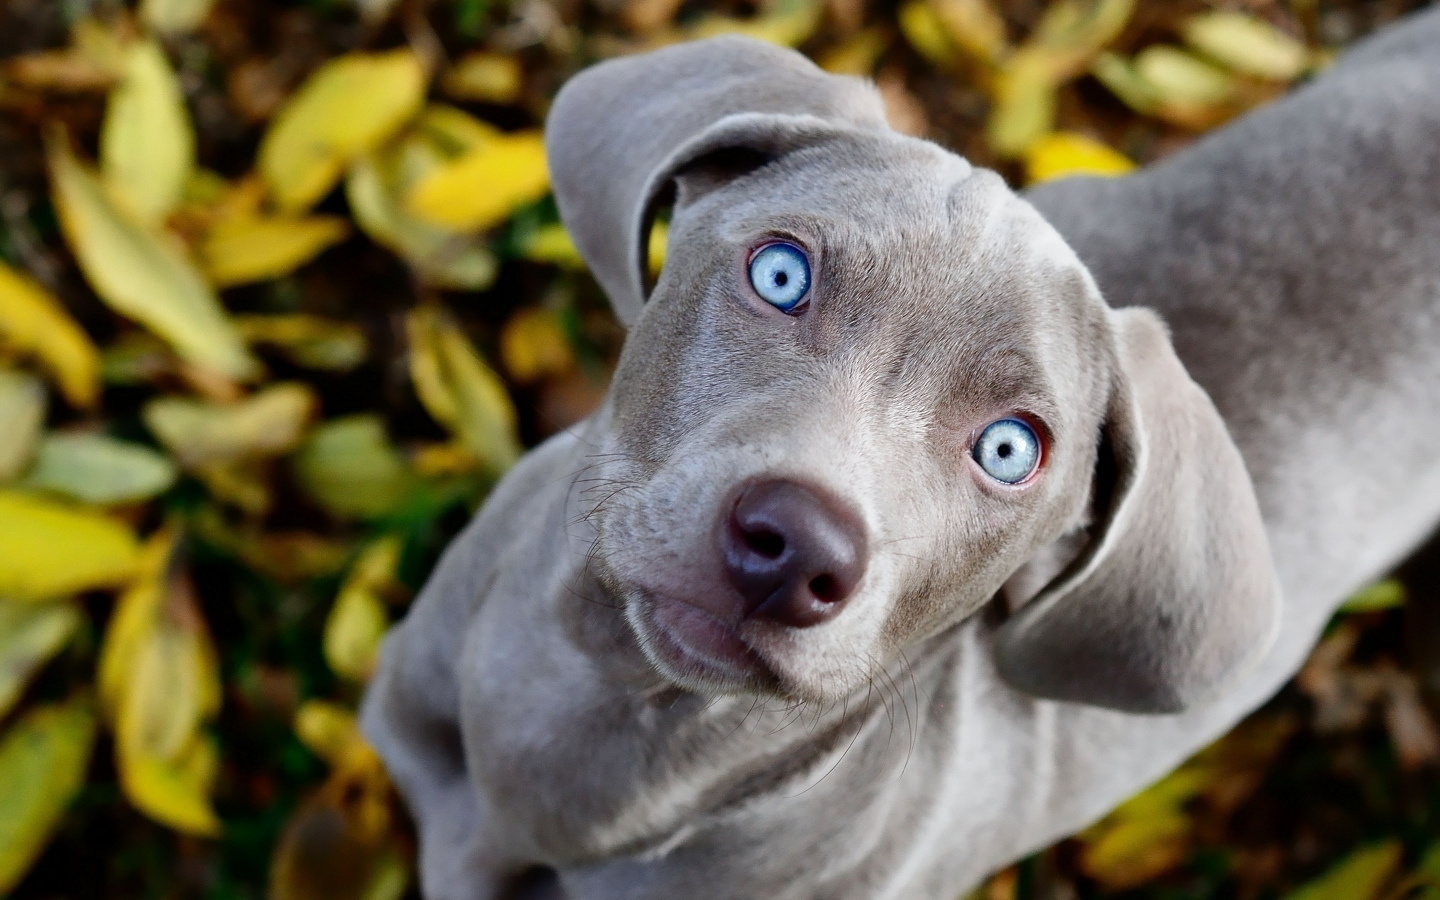 Dog with blue eyes look at you